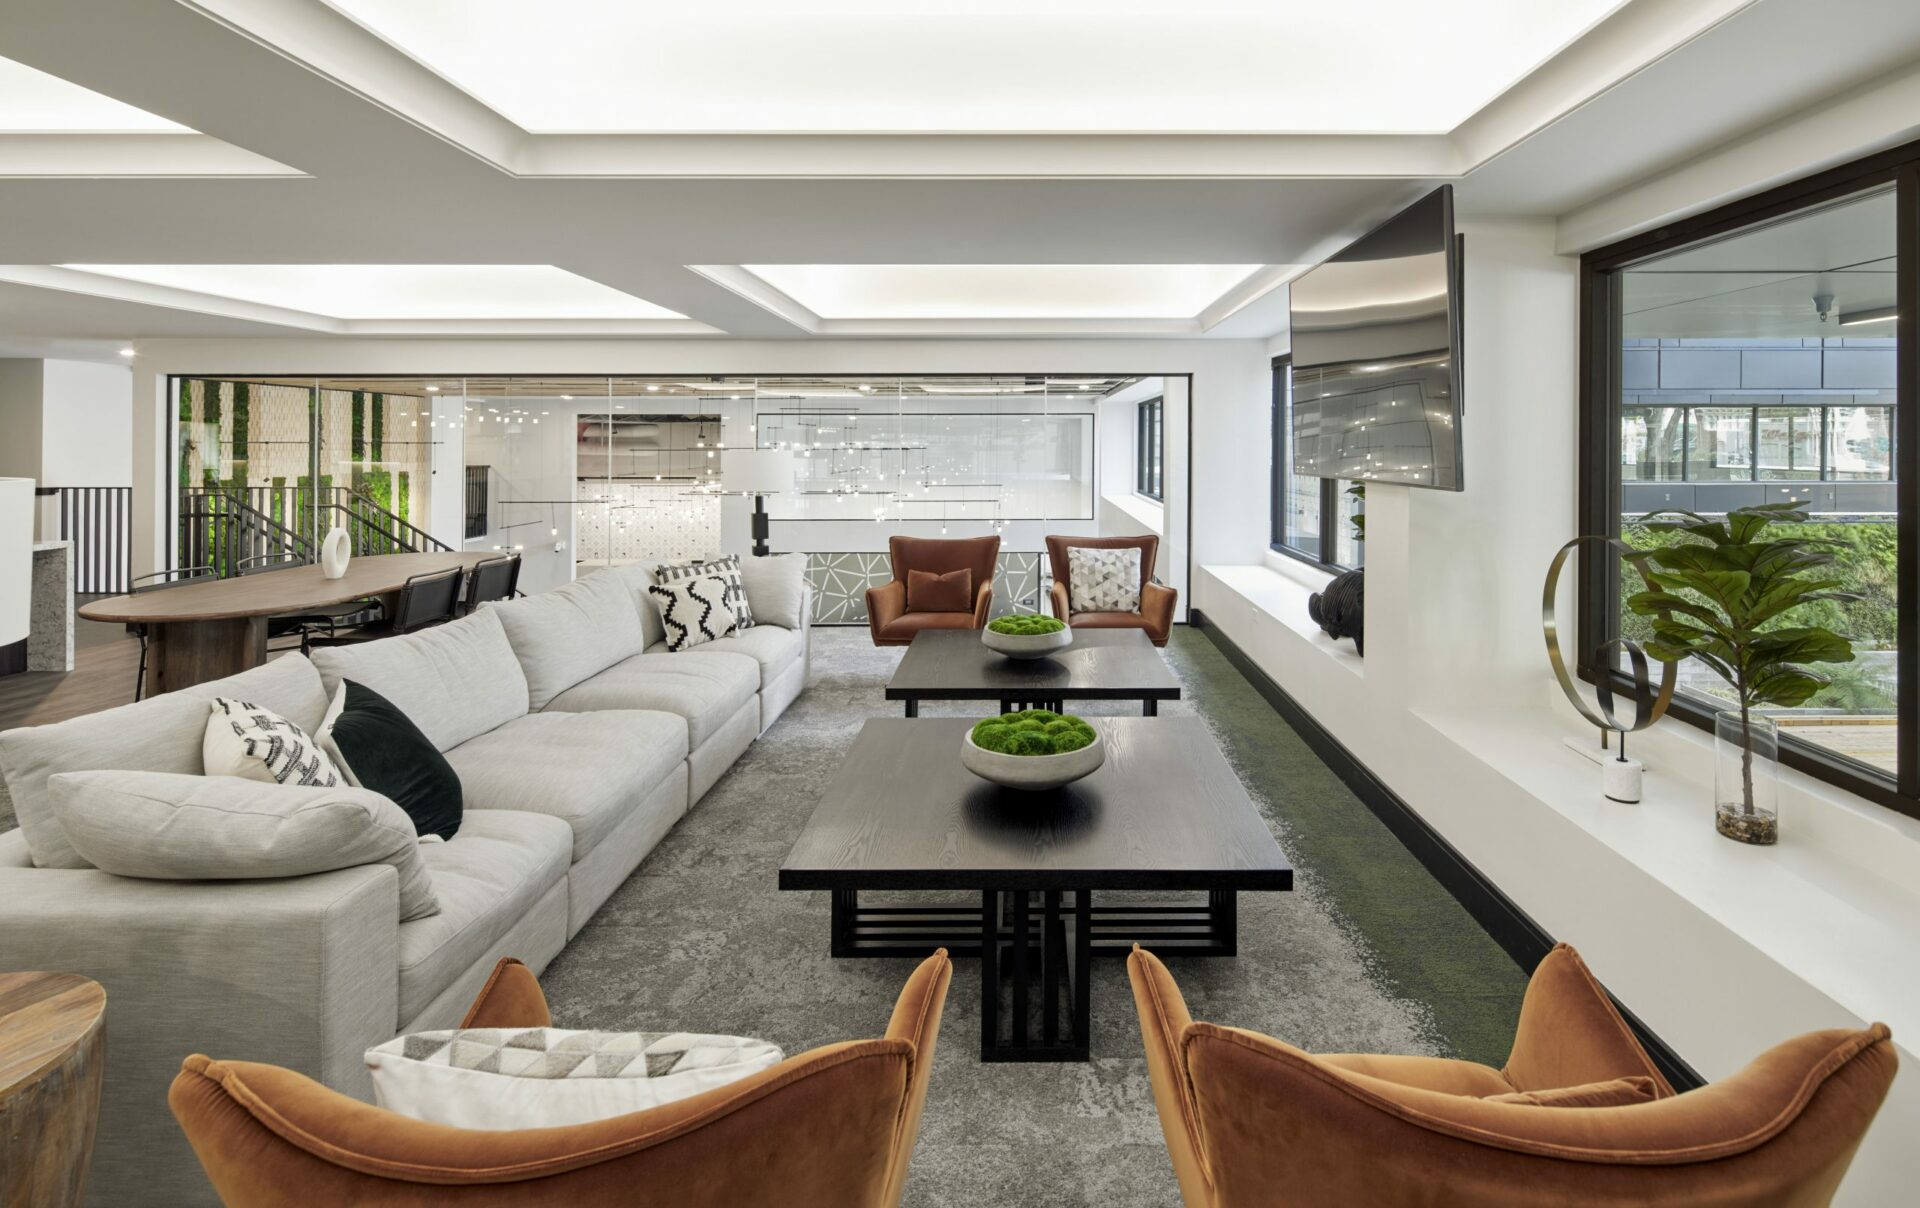 Oakland luxury apartments with live/work space